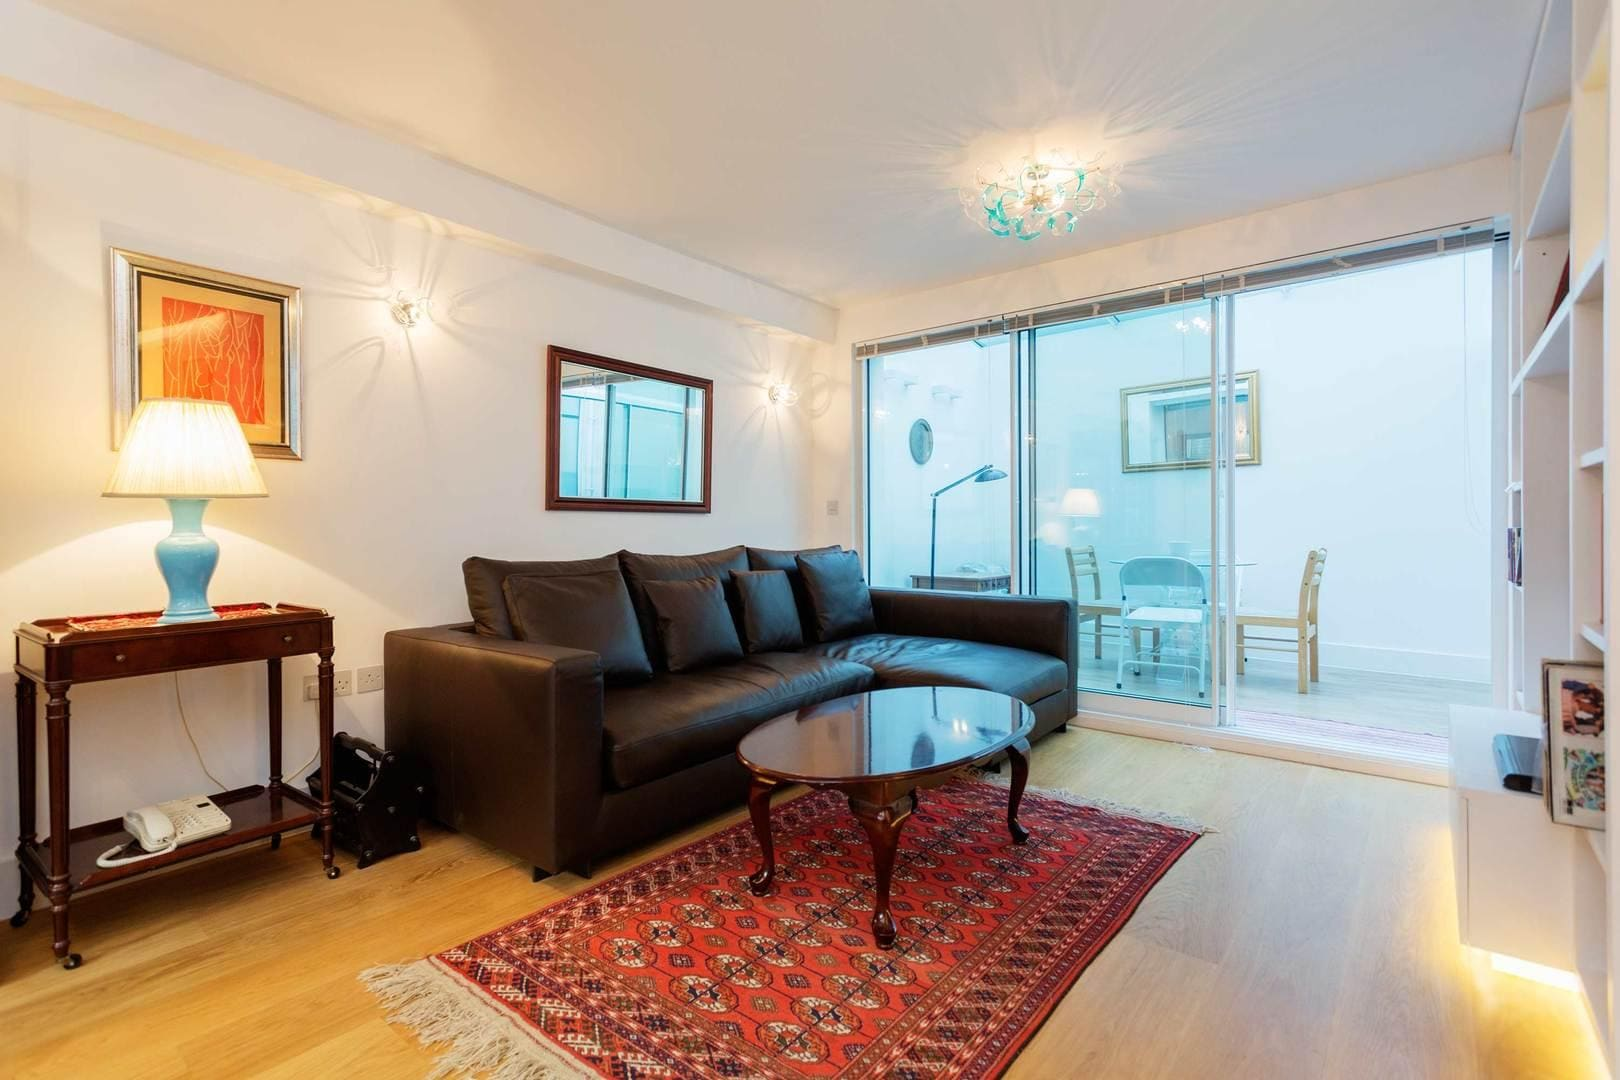 Property Image 2 - Contemporary Chic Apartment in Desirable Mayfair